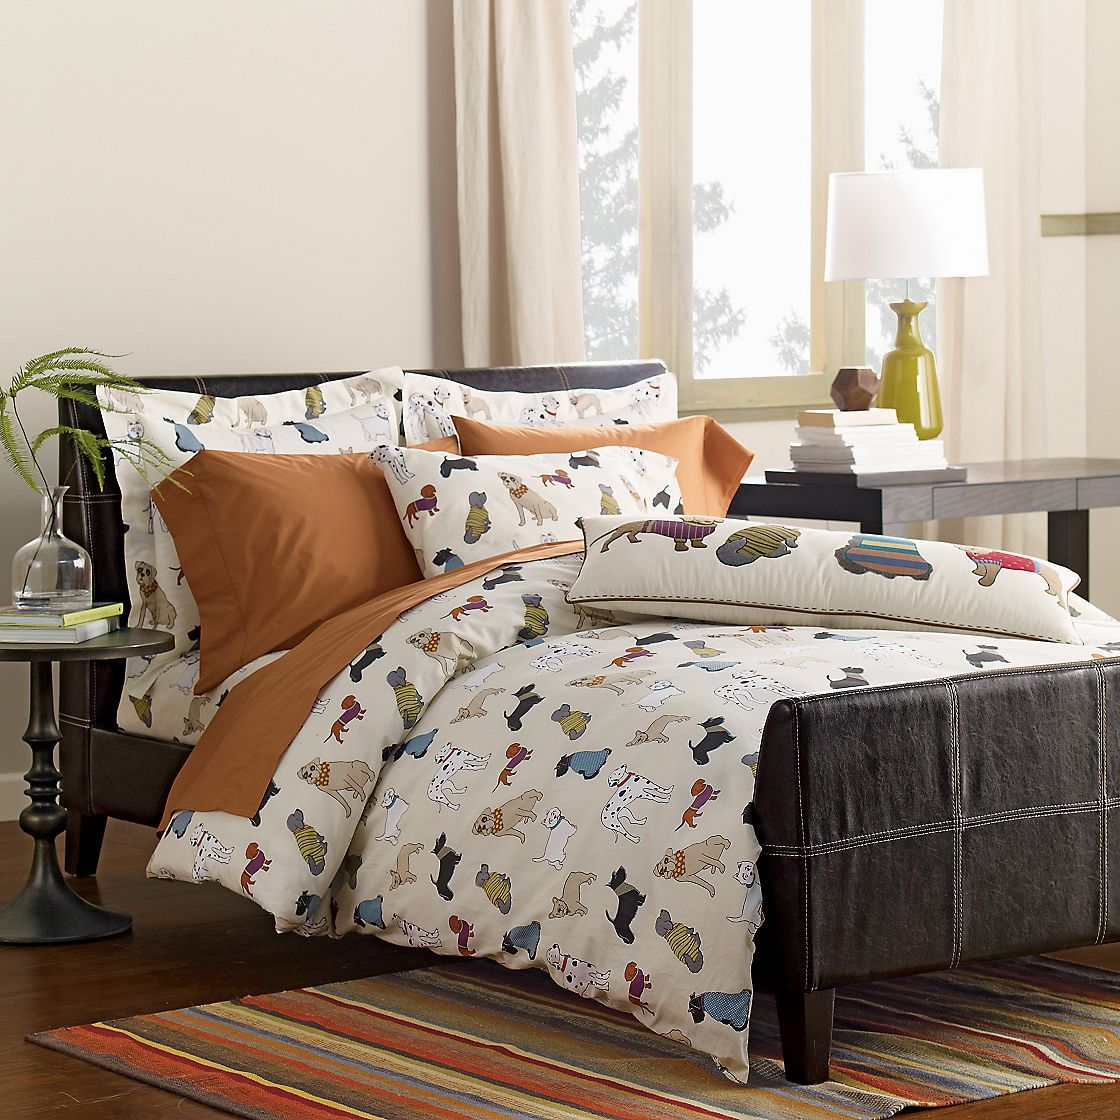 Dog Show Percale Duvet Cover and Sham